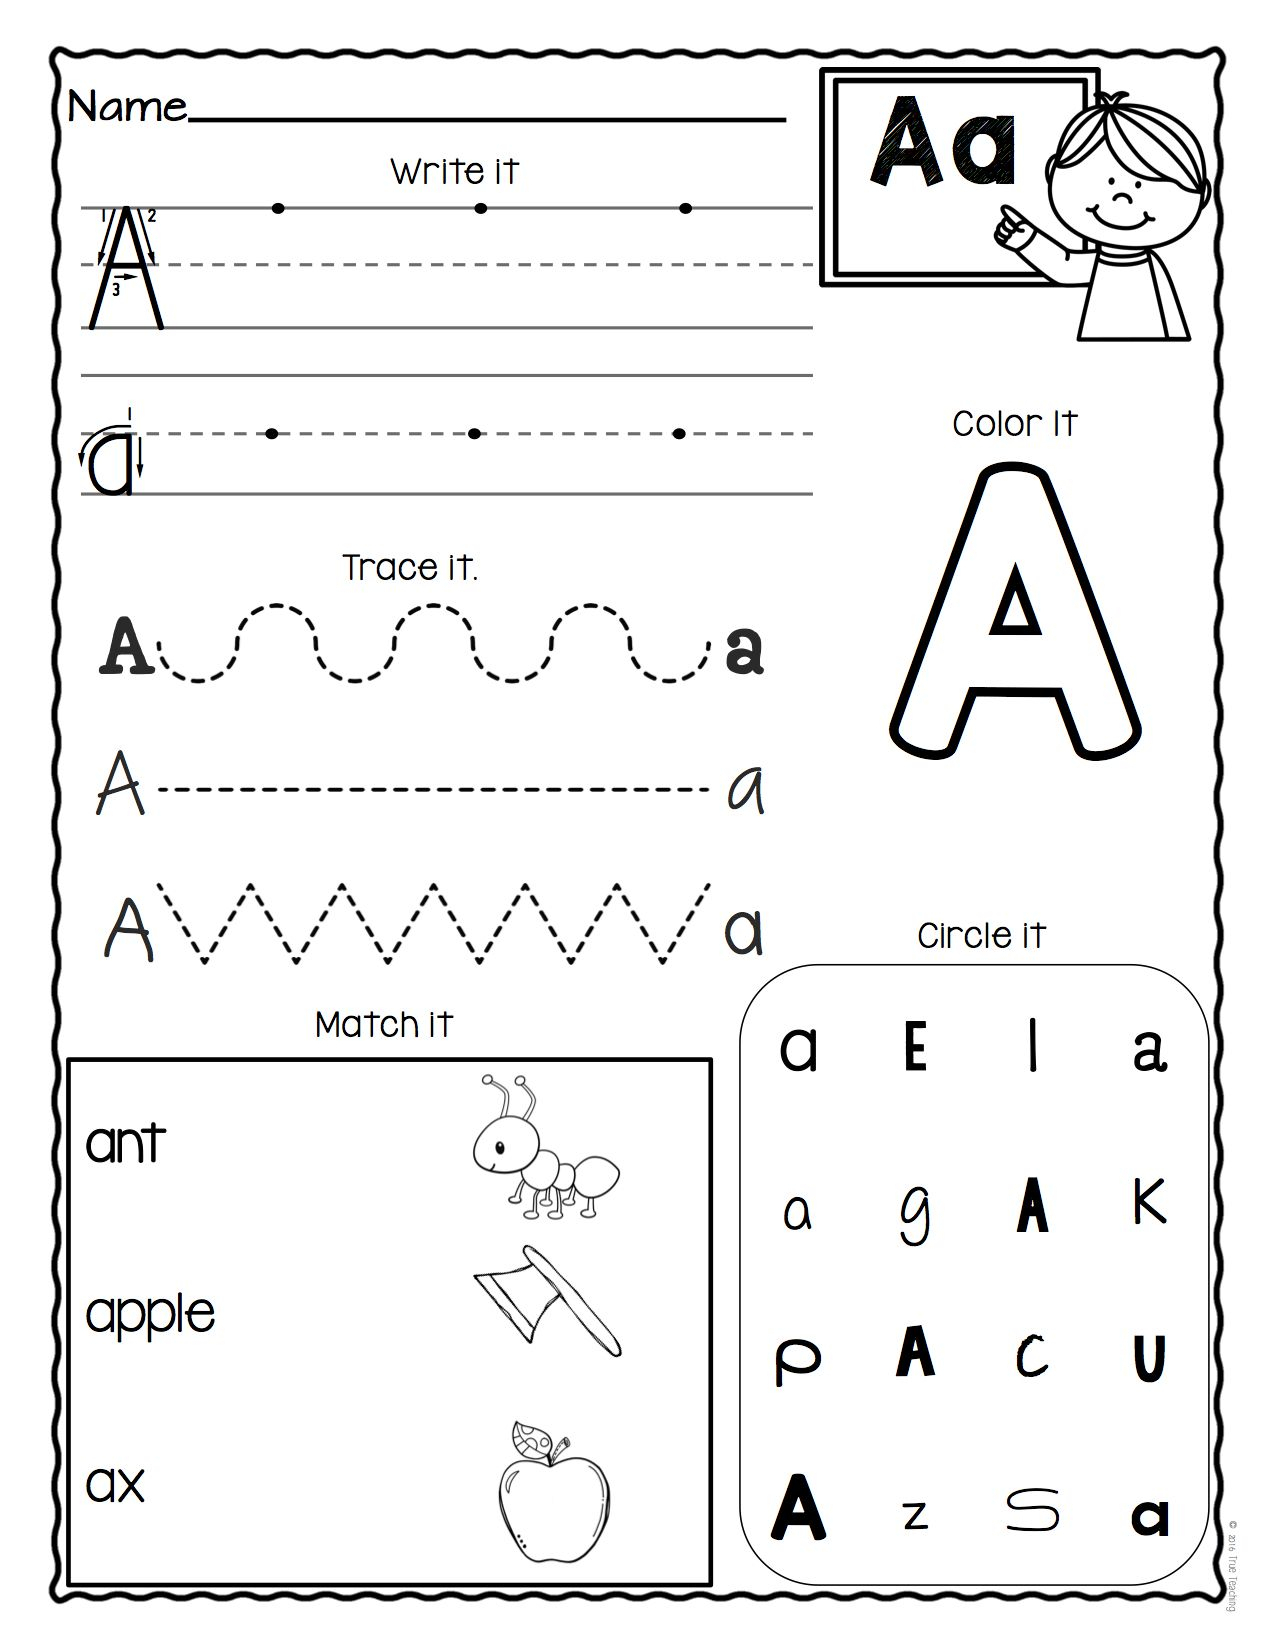 A-Z Letter Worksheets (Set 3) | Preschool Worksheets throughout Alphabet Letters Worksheets Grade 3